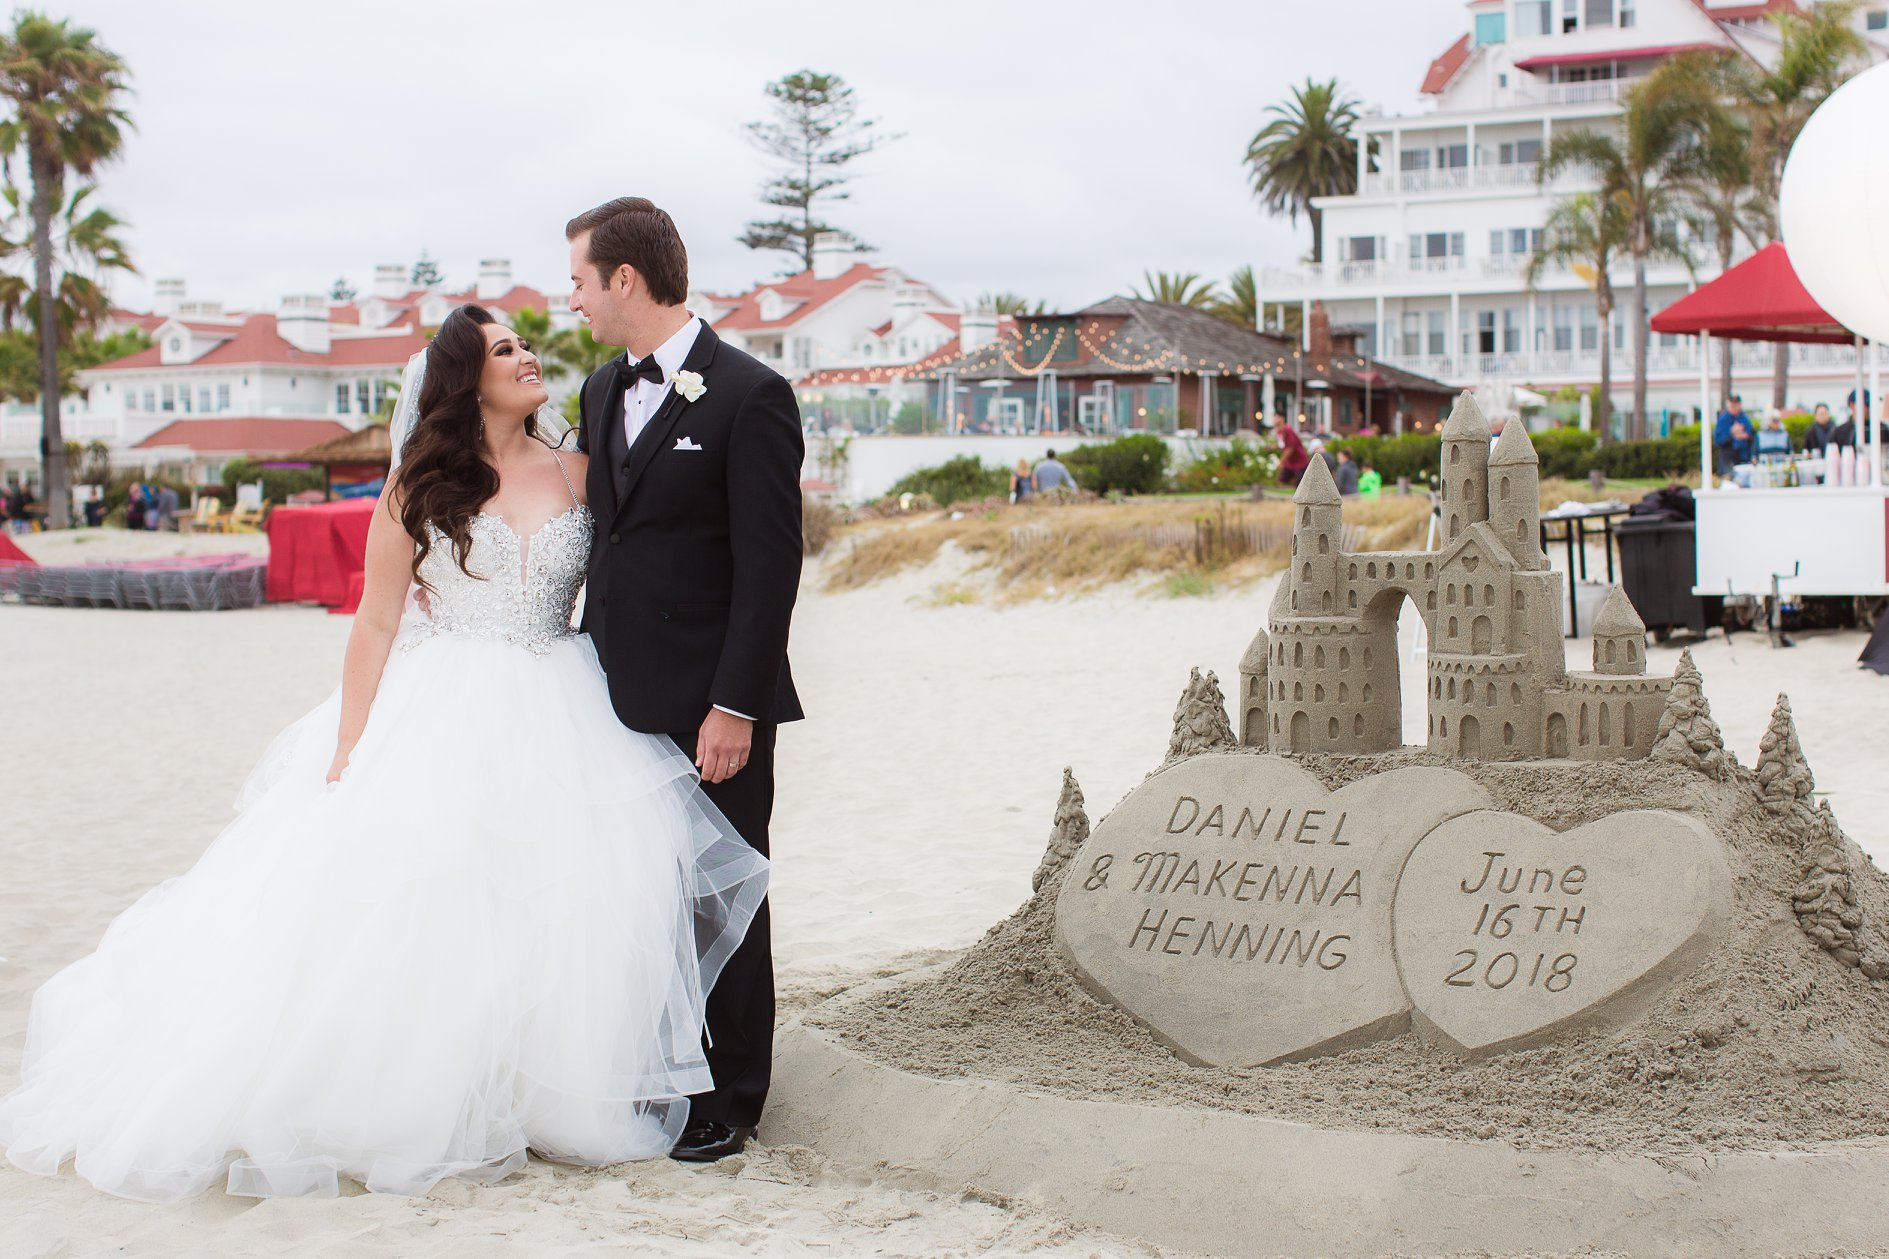 Makenna and Daniel pose on the beach next to a custom sandcastle after their wedding ceremony at the Hotel Del Coronado.